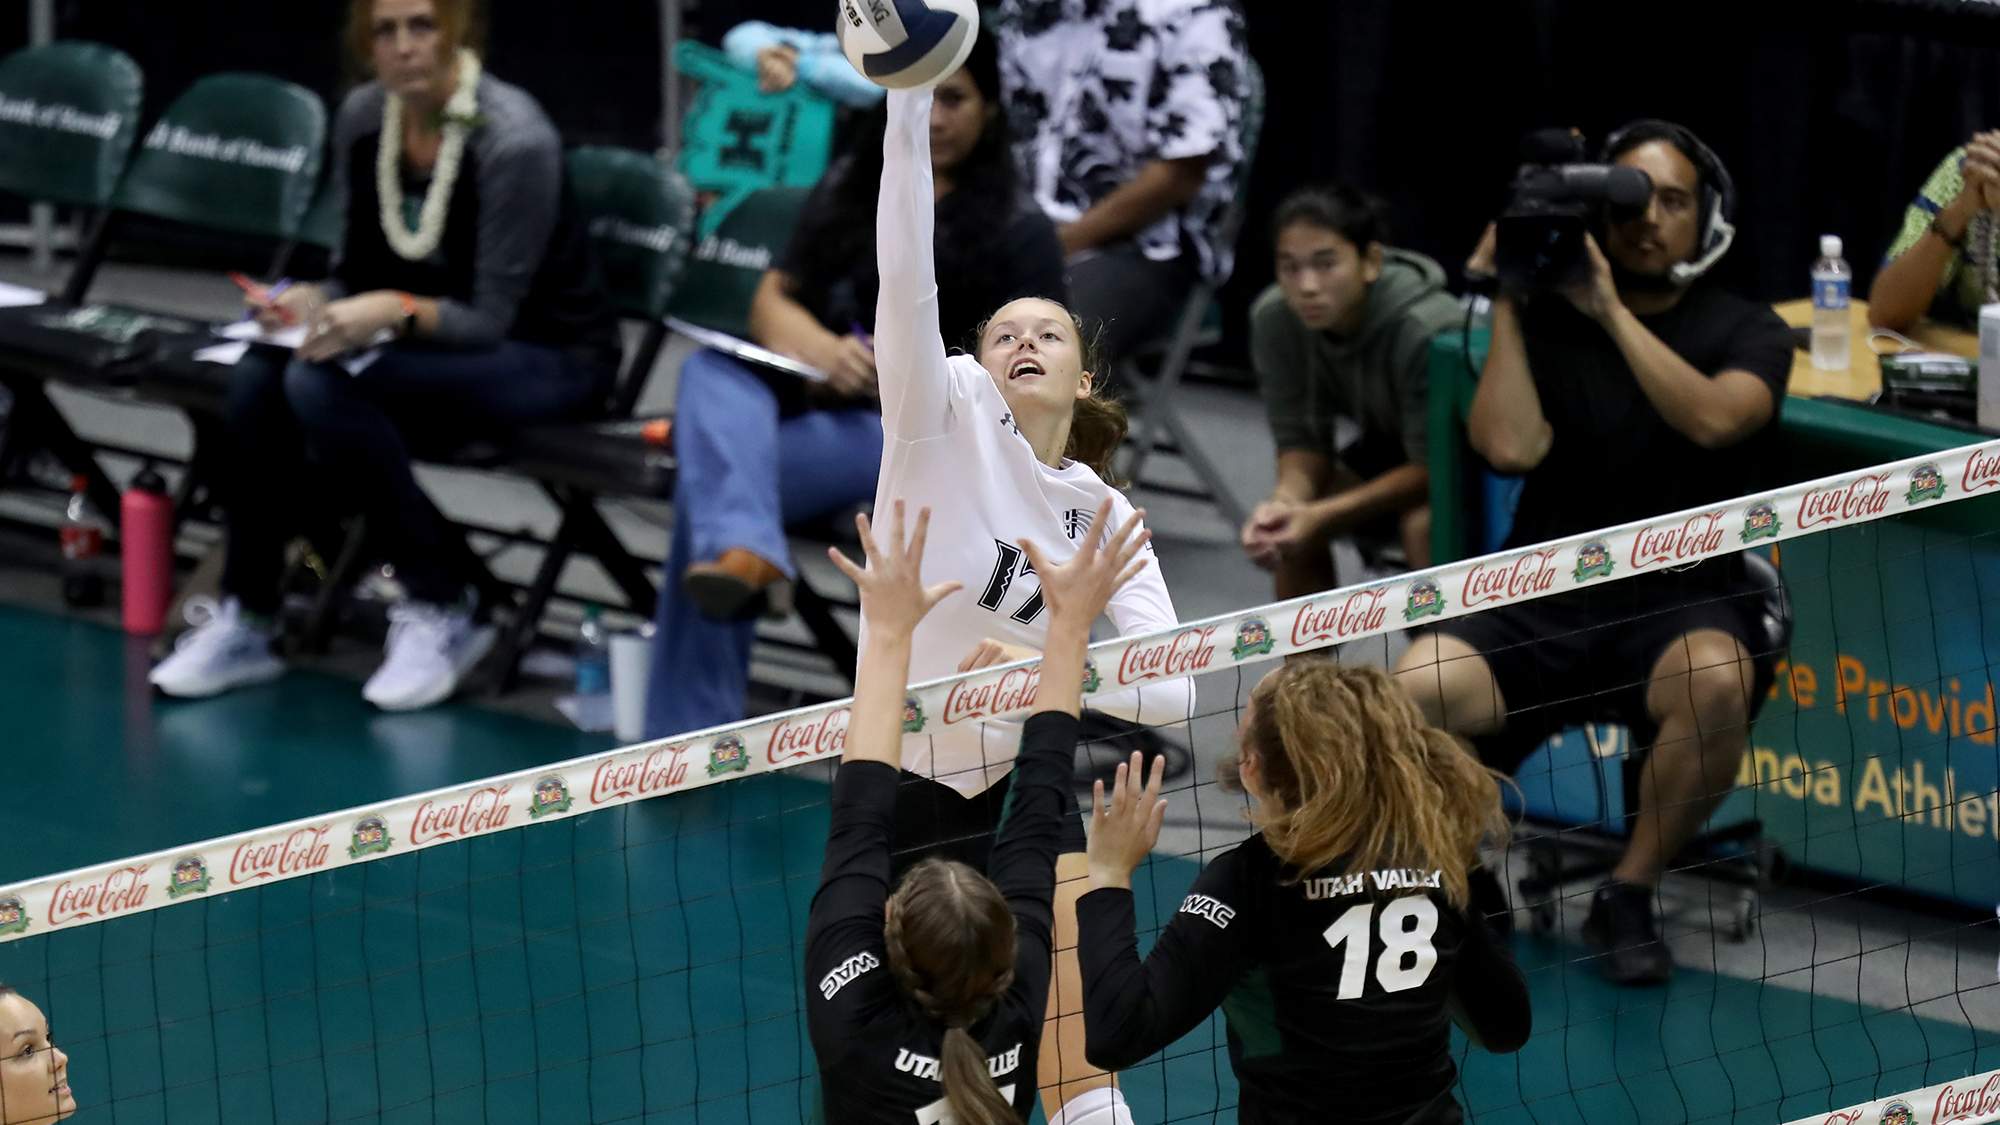 No. 18 Women's Volleyball Downs Utah Valley, 3-1